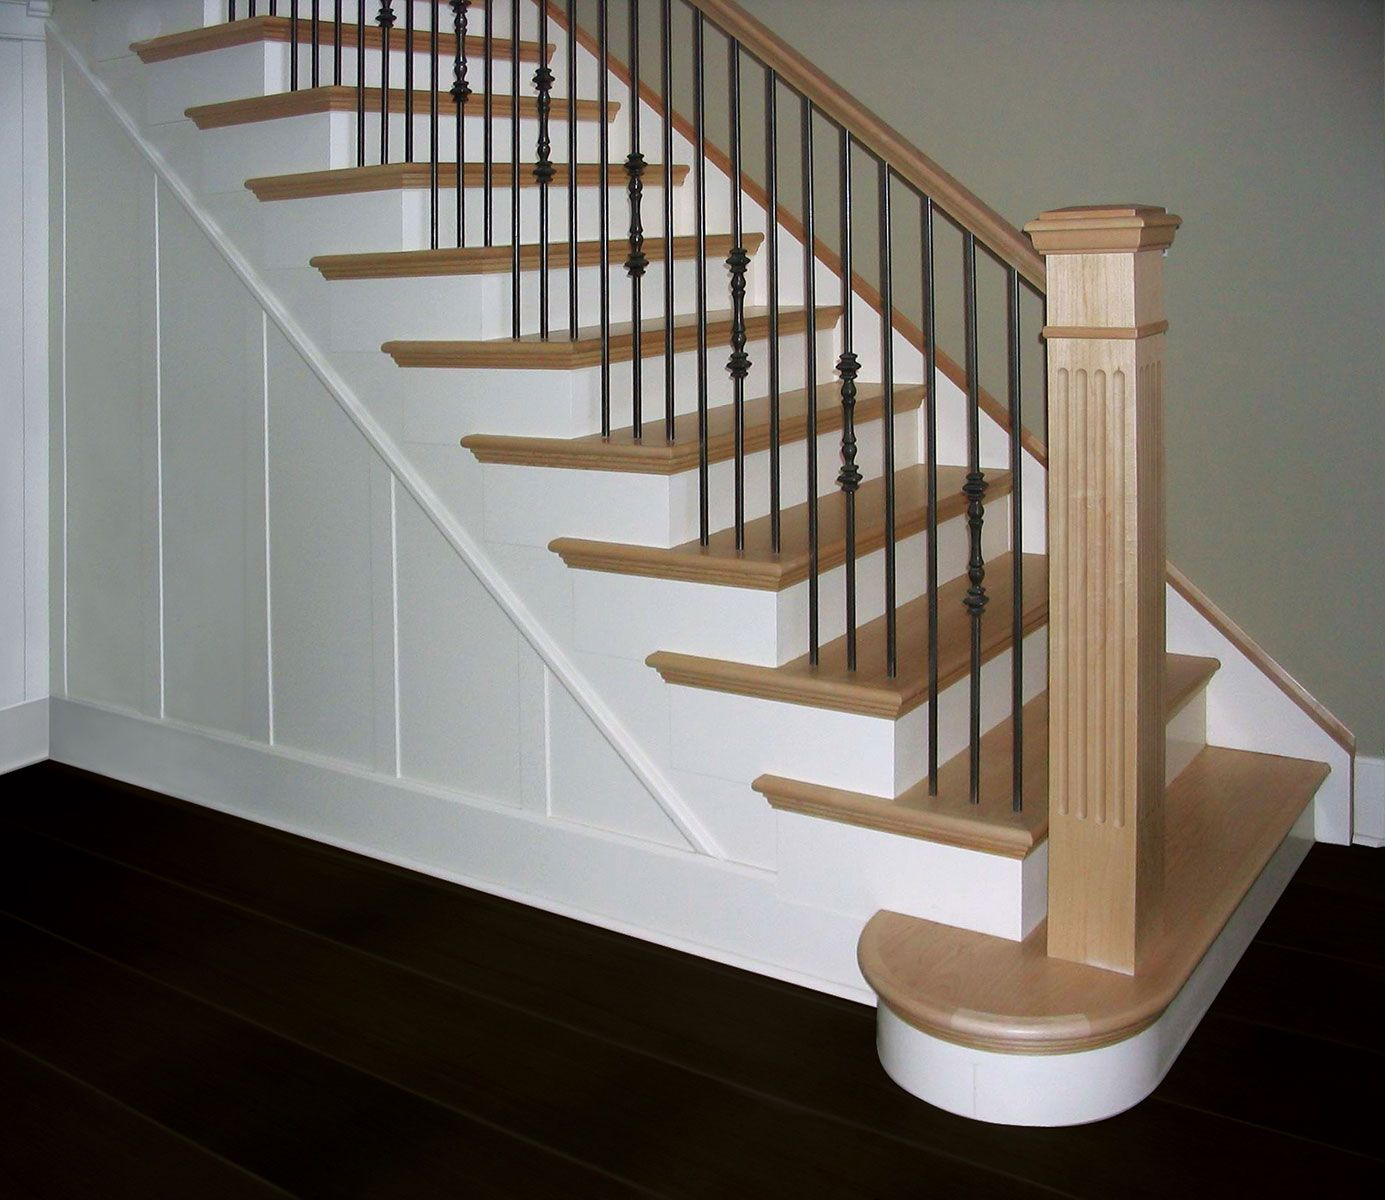 Possible Stair Remodel; Would Add Dirt Resistant Carpeted Runner.